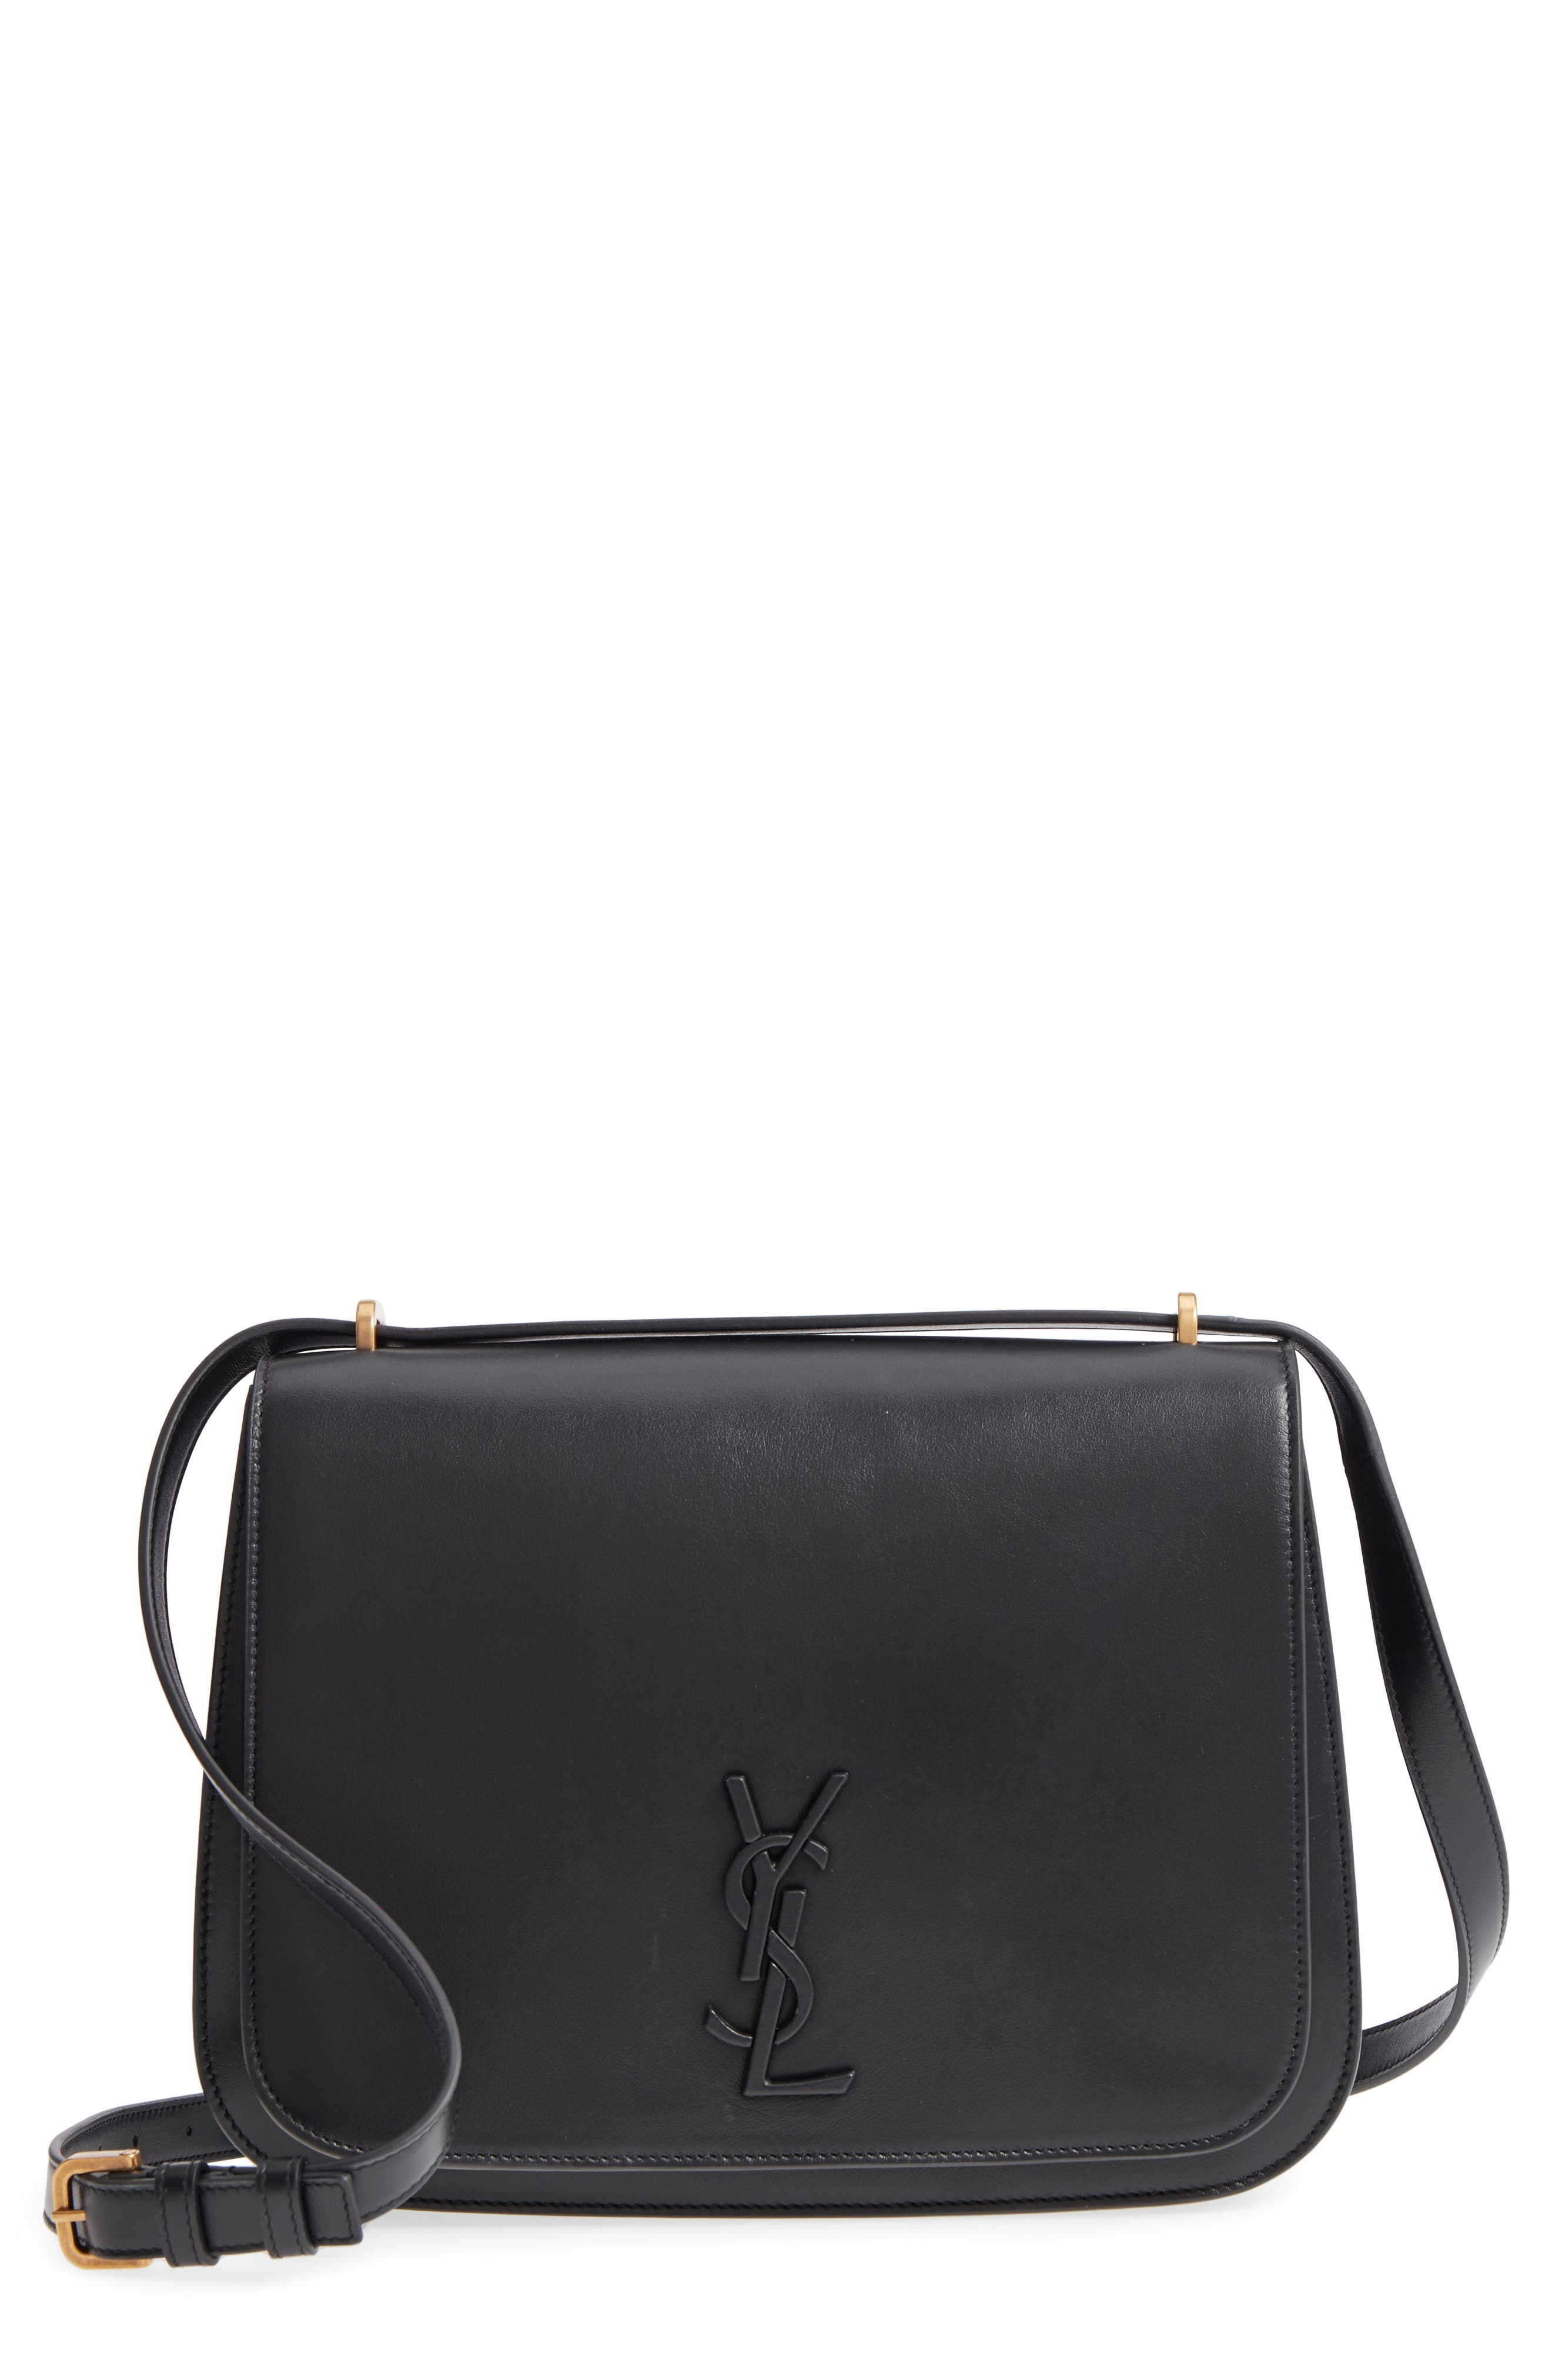 Saint Laurent Medium Spontini Leather Shoulder Bag